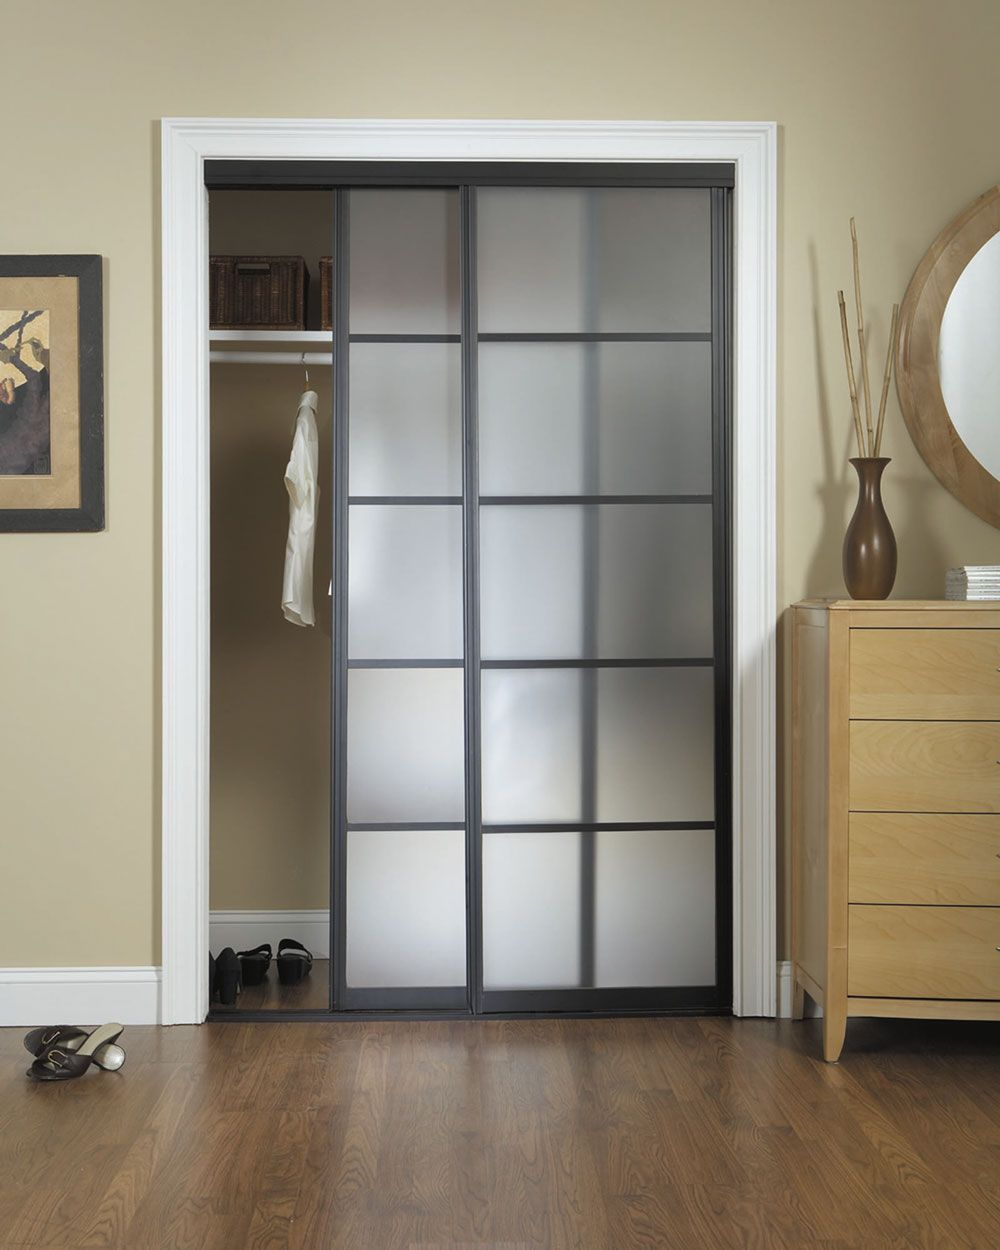 closet l mobileflip handballtunisie door info mirrored installation doors org lowes marvelous bifold